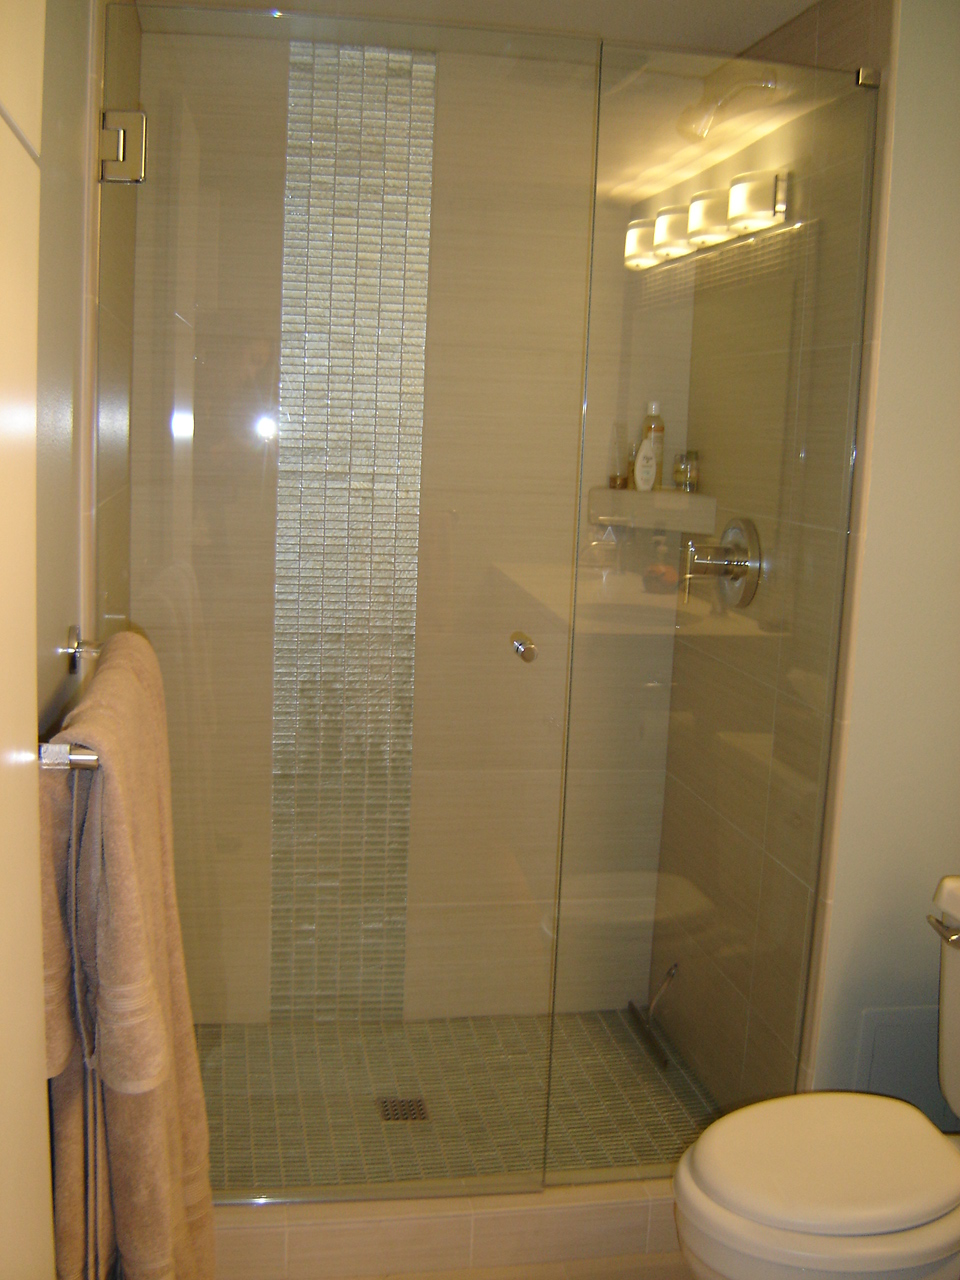 Bathroom Remodel Lincoln Ne litwin guest bath, remodel, denver, co | schuster design studio